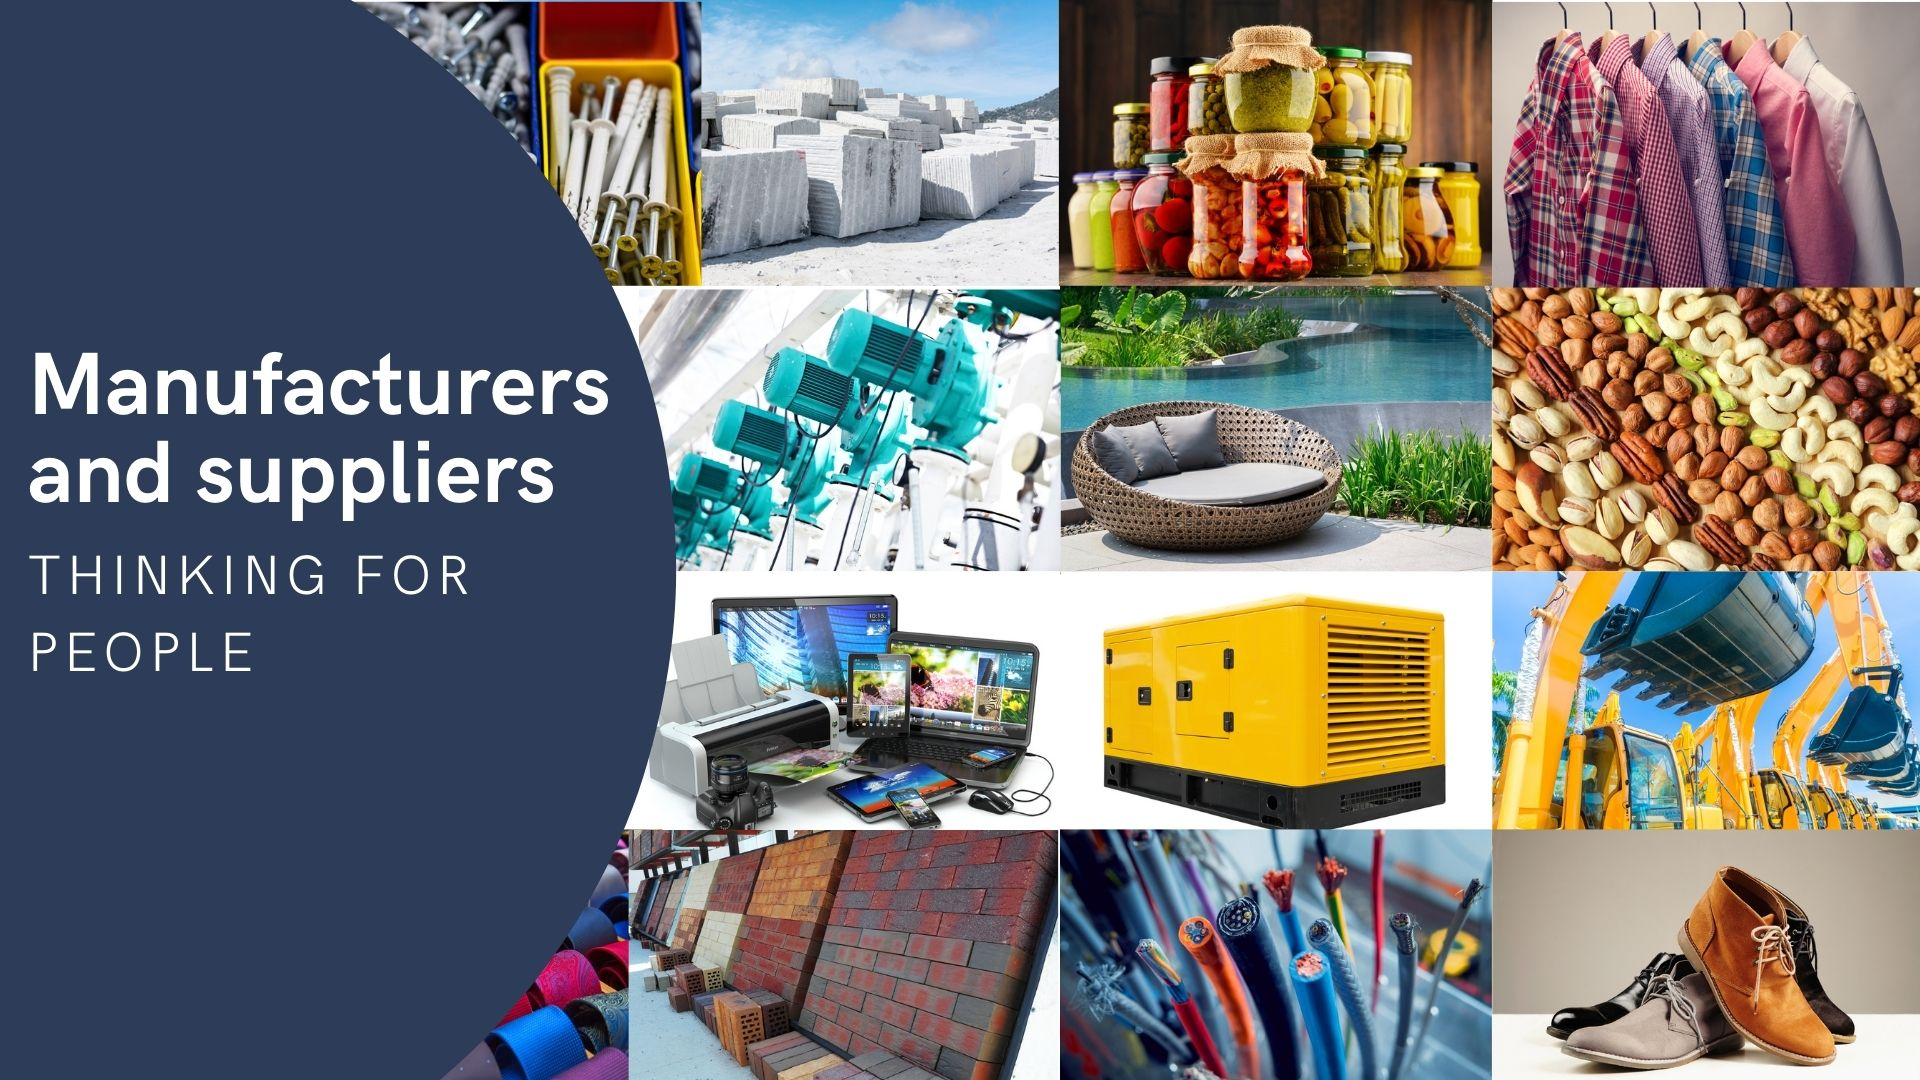 Suppliers and manufacturers from all over the world